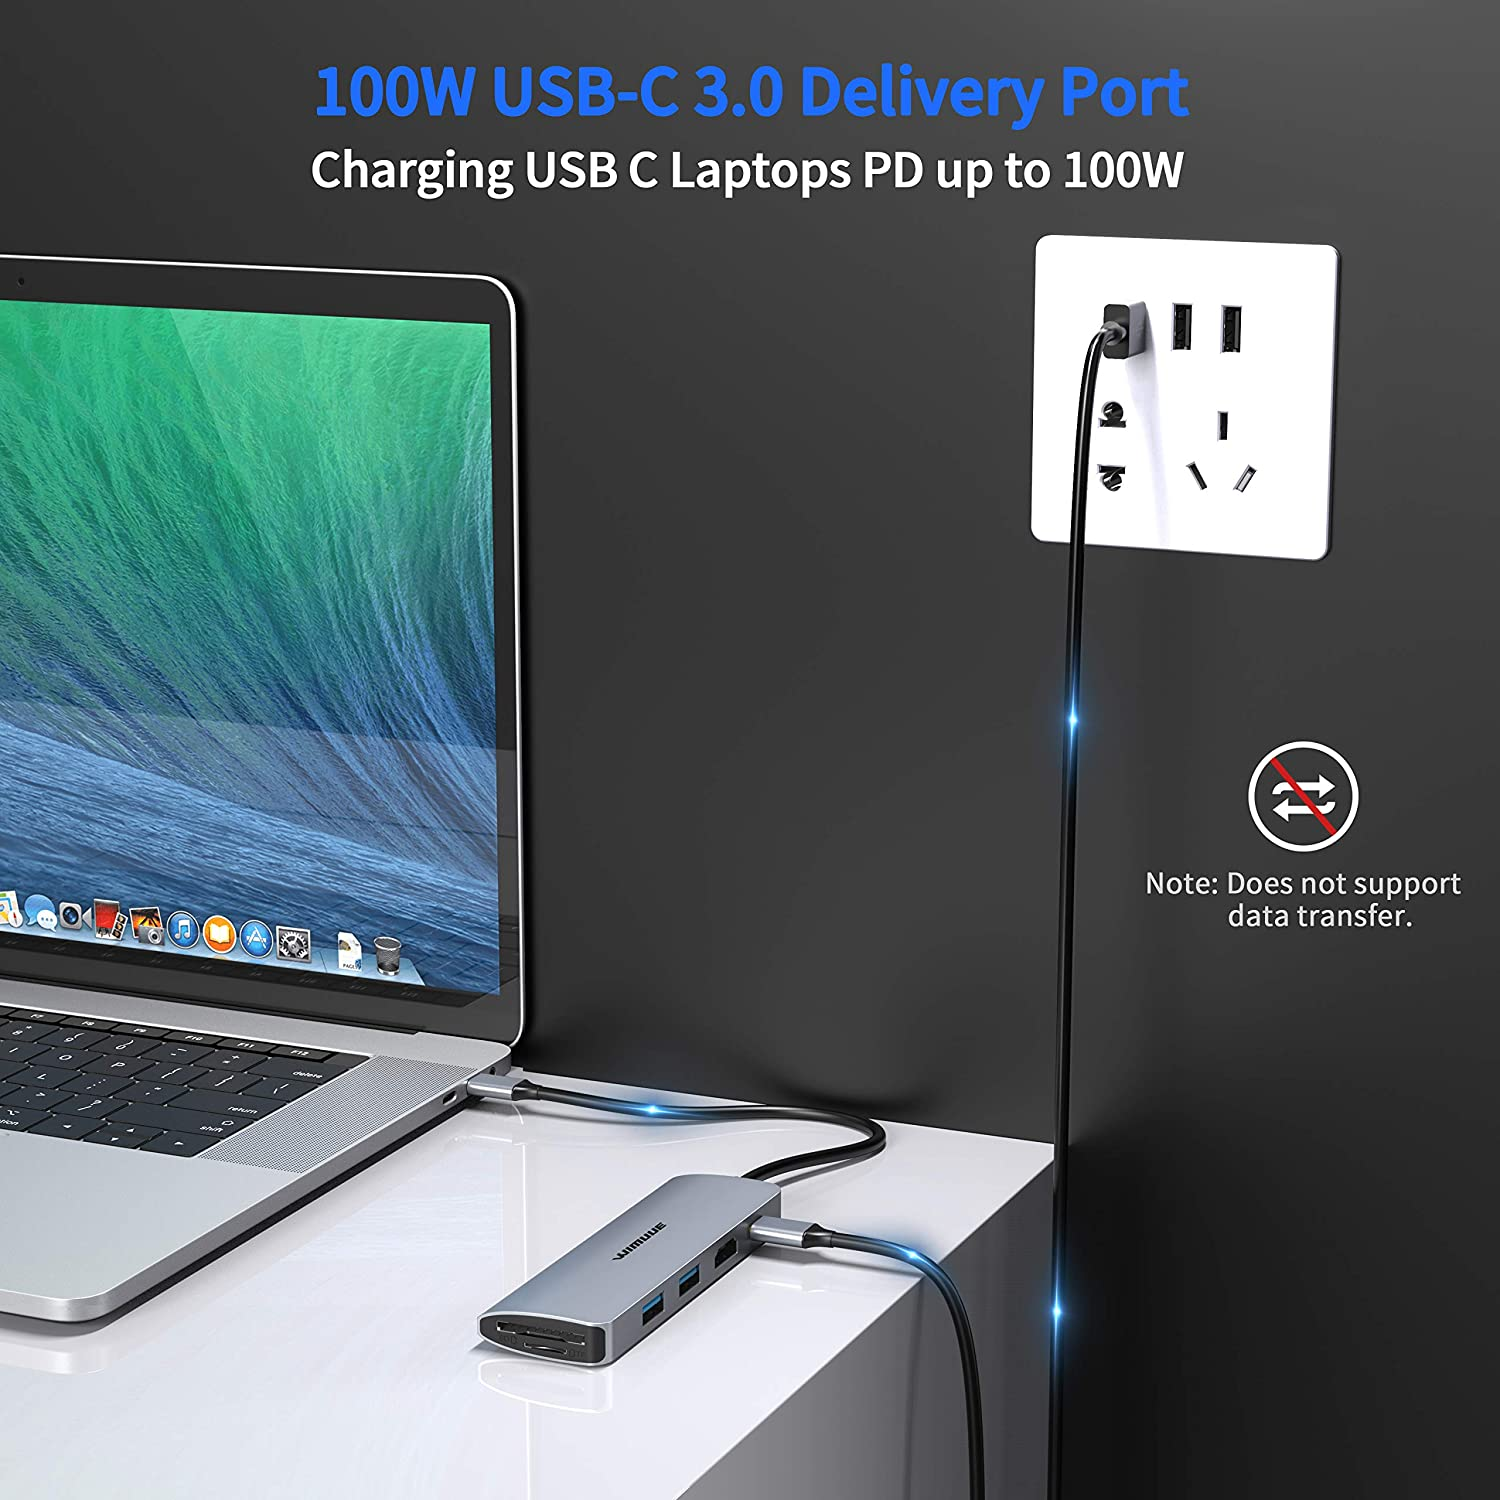 USBC Dongle with 2 x USB 3.0 Ports 100W Power Delivery Micro SD and SD Card Reader Slots USB C Hub WIMUUE 7-in-1 USB-C Adapter for MacBook Pro//Air Multiport Dock for USB Type C Laptops 4K HDMI